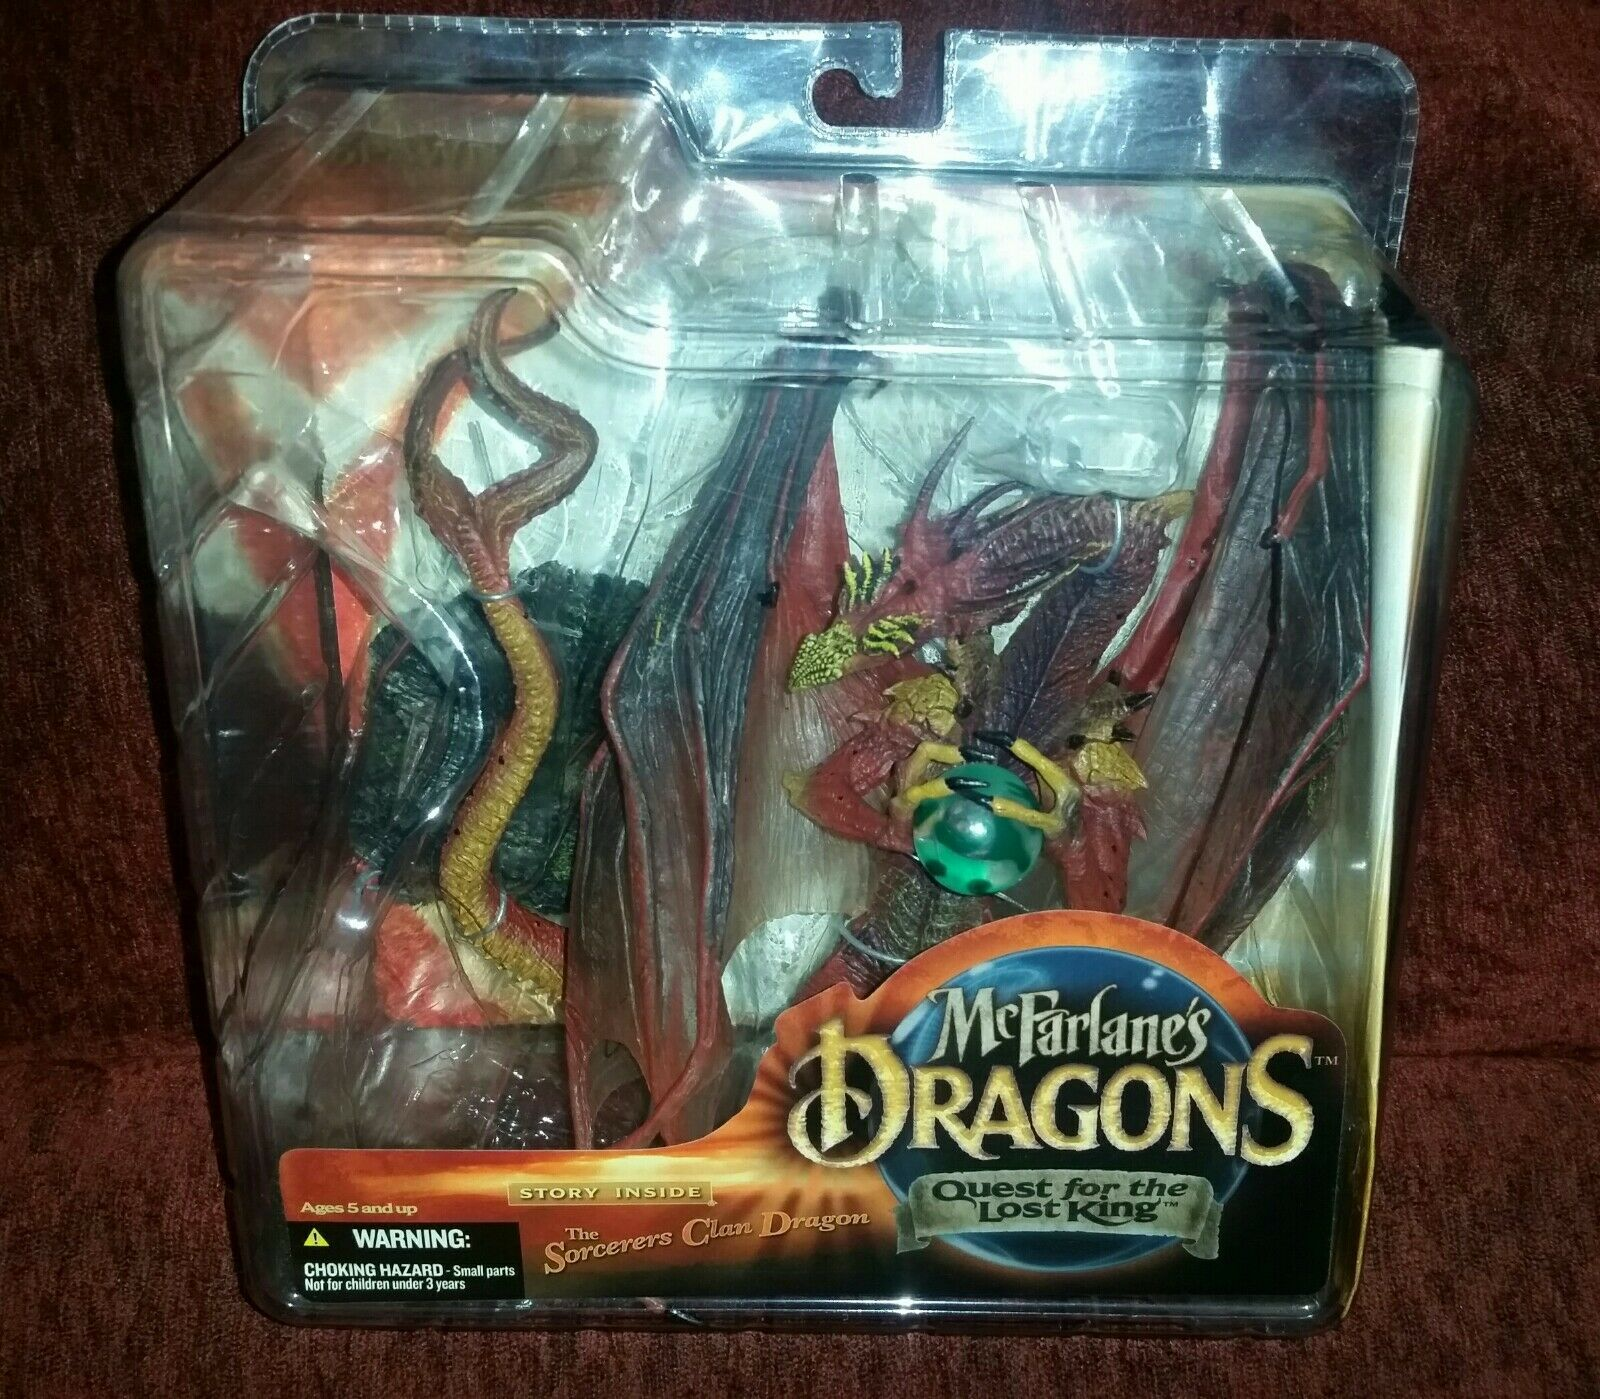 McFarlane Dragons Quest For The Lost King Sorcerers Clan Dragon RARE SPAWN HOT